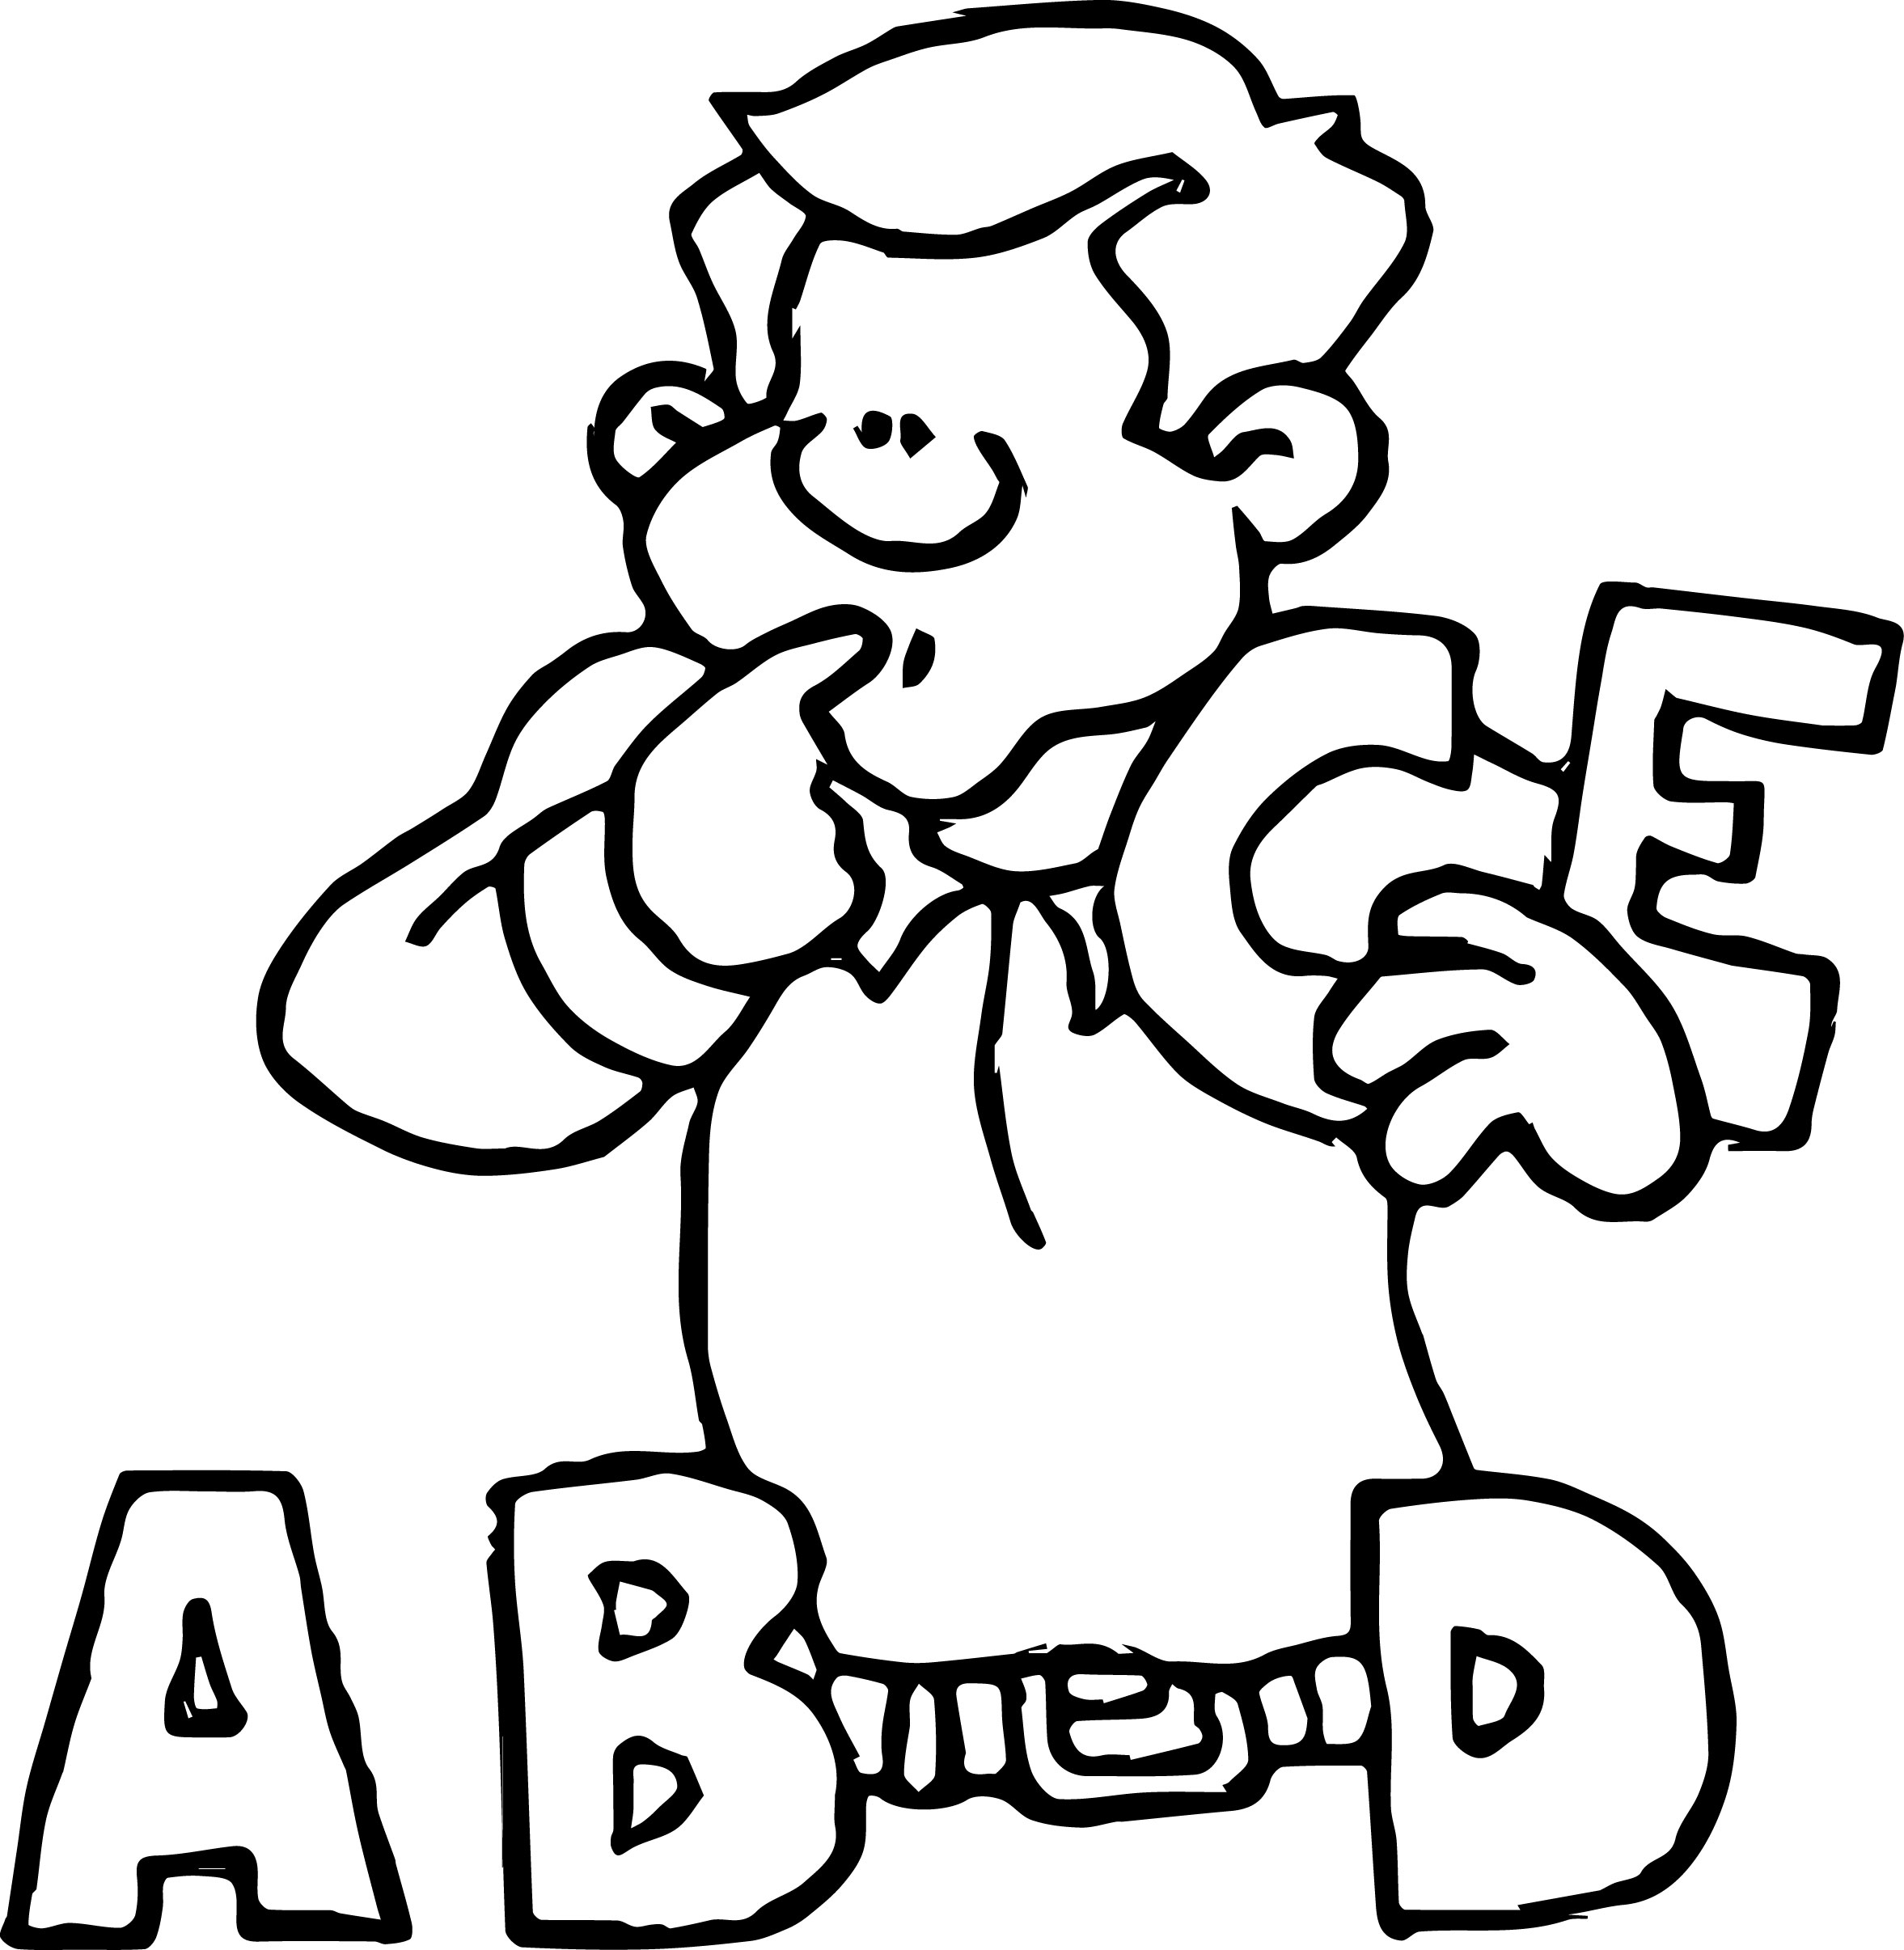 A B D E Letter Man Cartoon Coloring Page